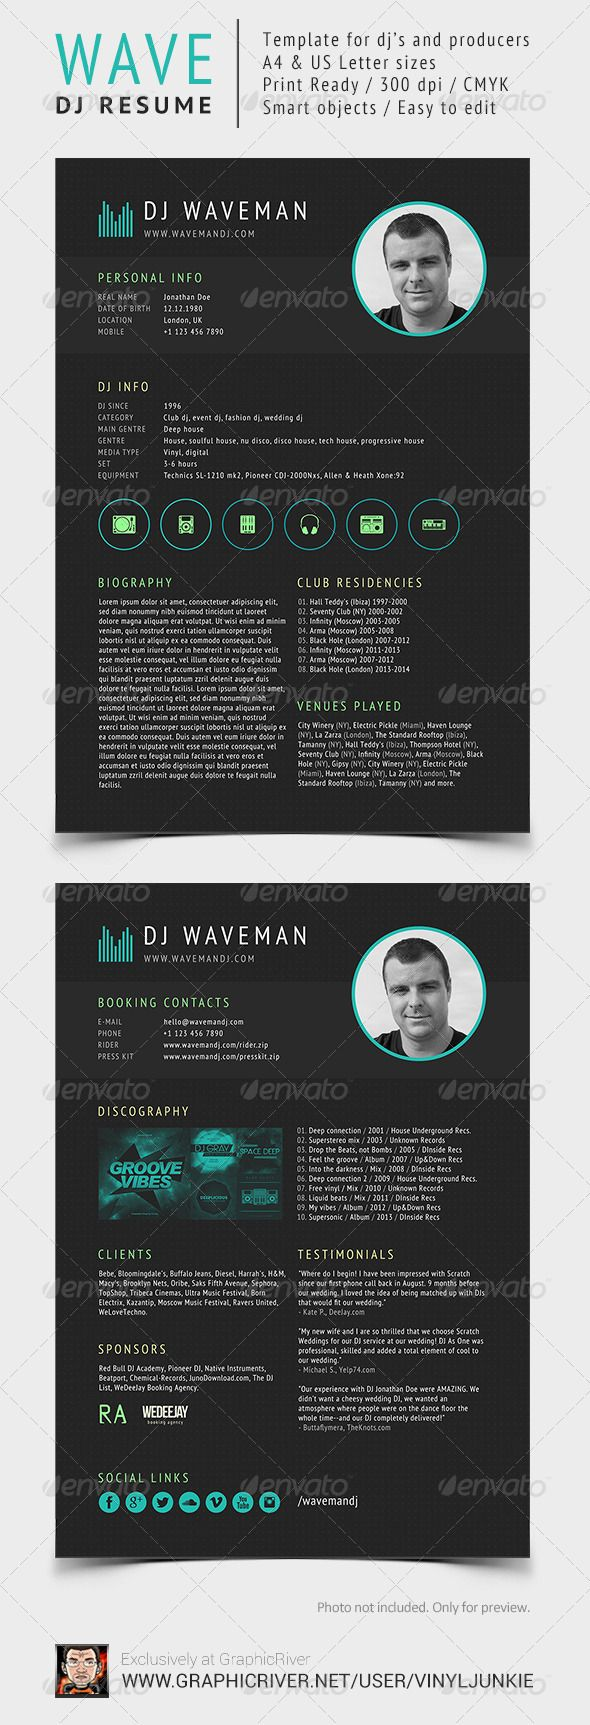 Wave - DJ Resume / Press Kit | Press kits, Dj and Template